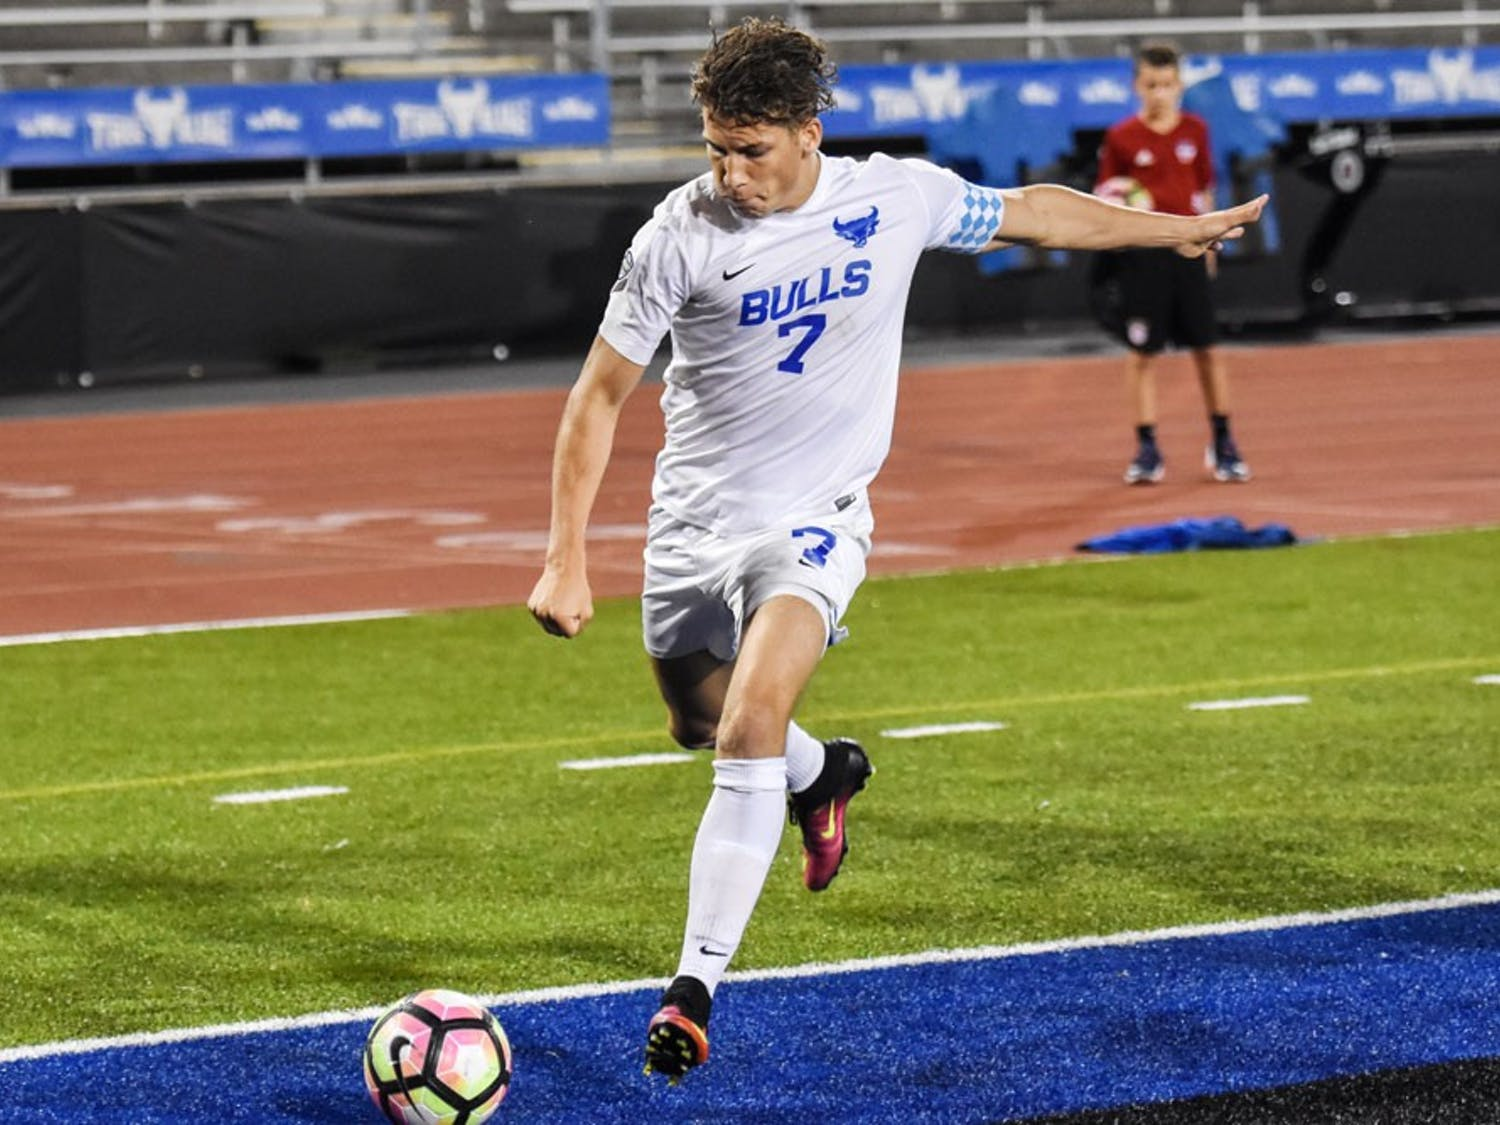 Russell Cicerone takes a shot on goal. Cicerone graduated UB with 42 goals scored and now plays professionally for Saint Louis FC.